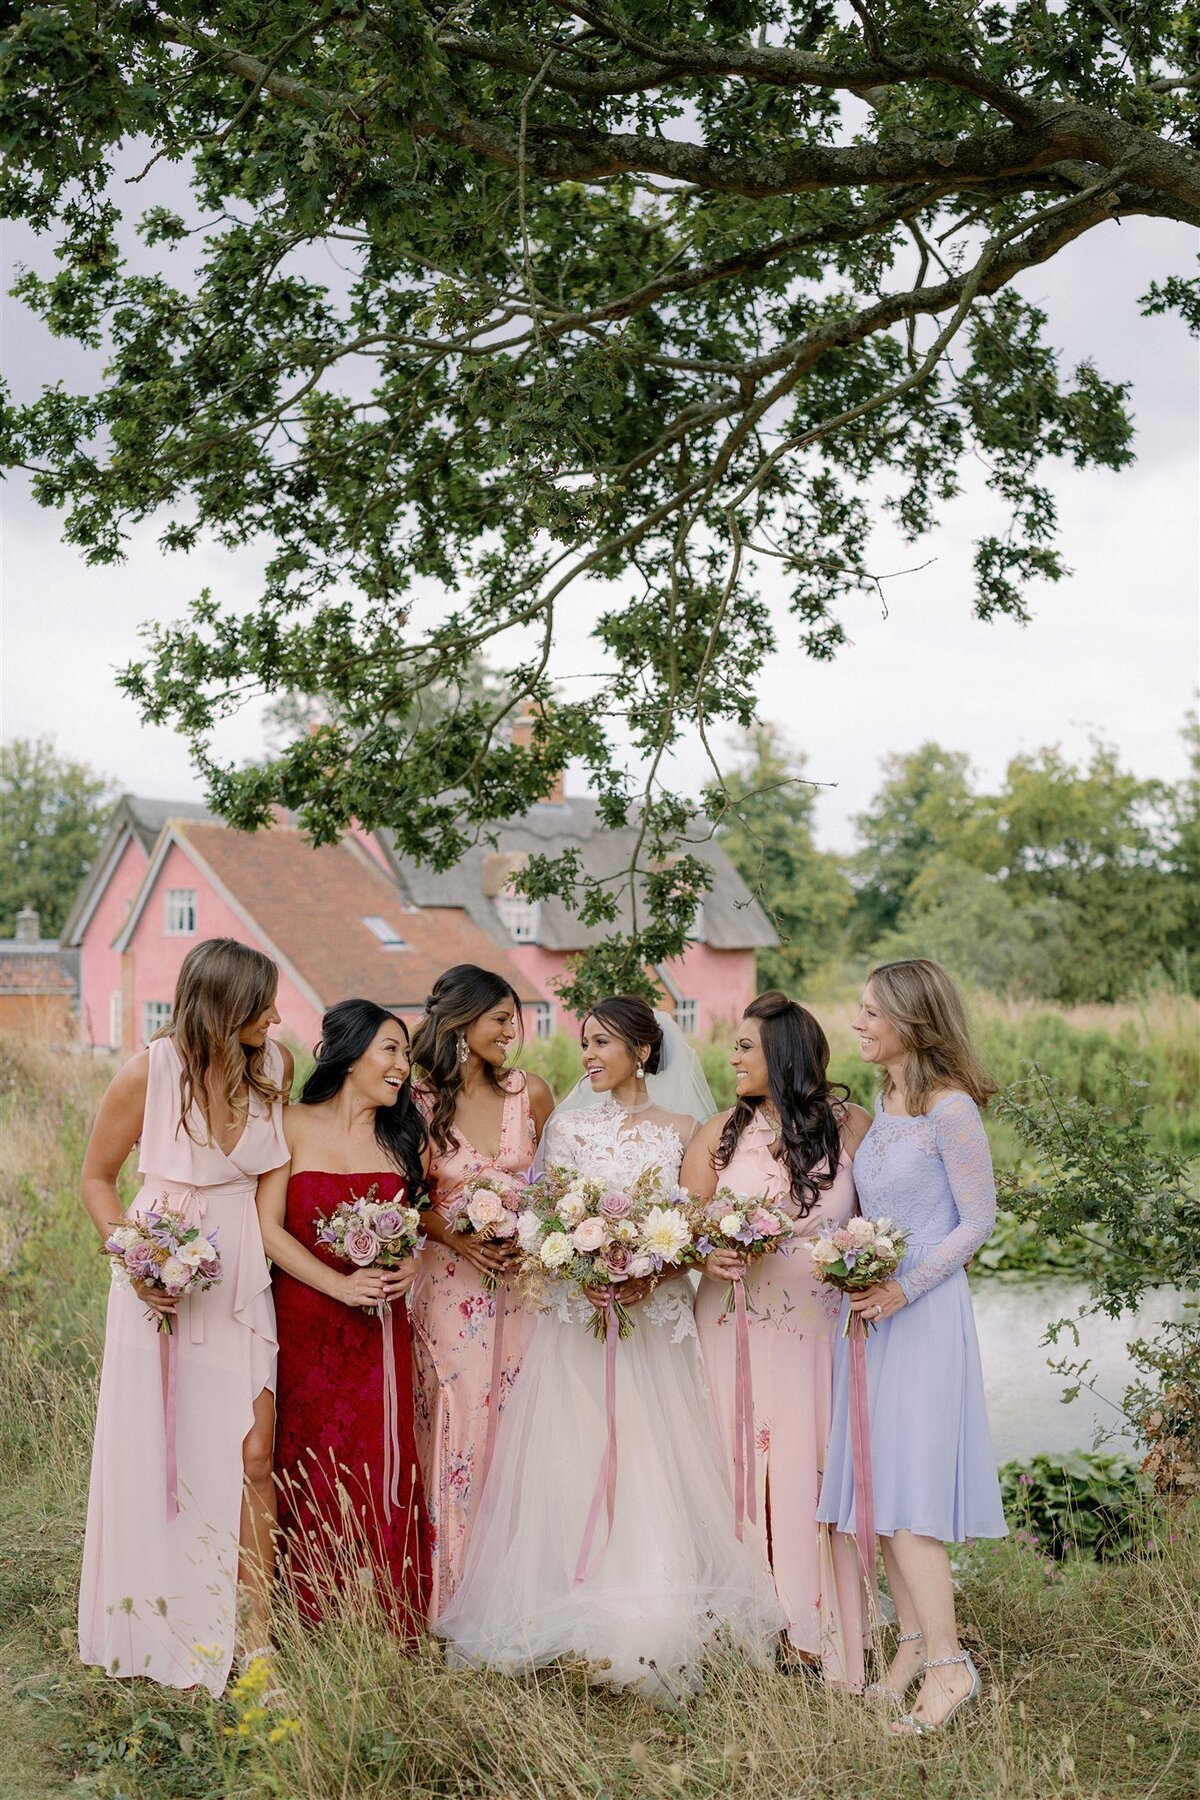 Wilderness-Wedding-British-Destination-Cinzia-Bruschini-Pocketful-of-Dreams-Wedding-Planner-Vogue-Harpers-Tatler-Vera-Wang-Jimmy-Choo-Bride30